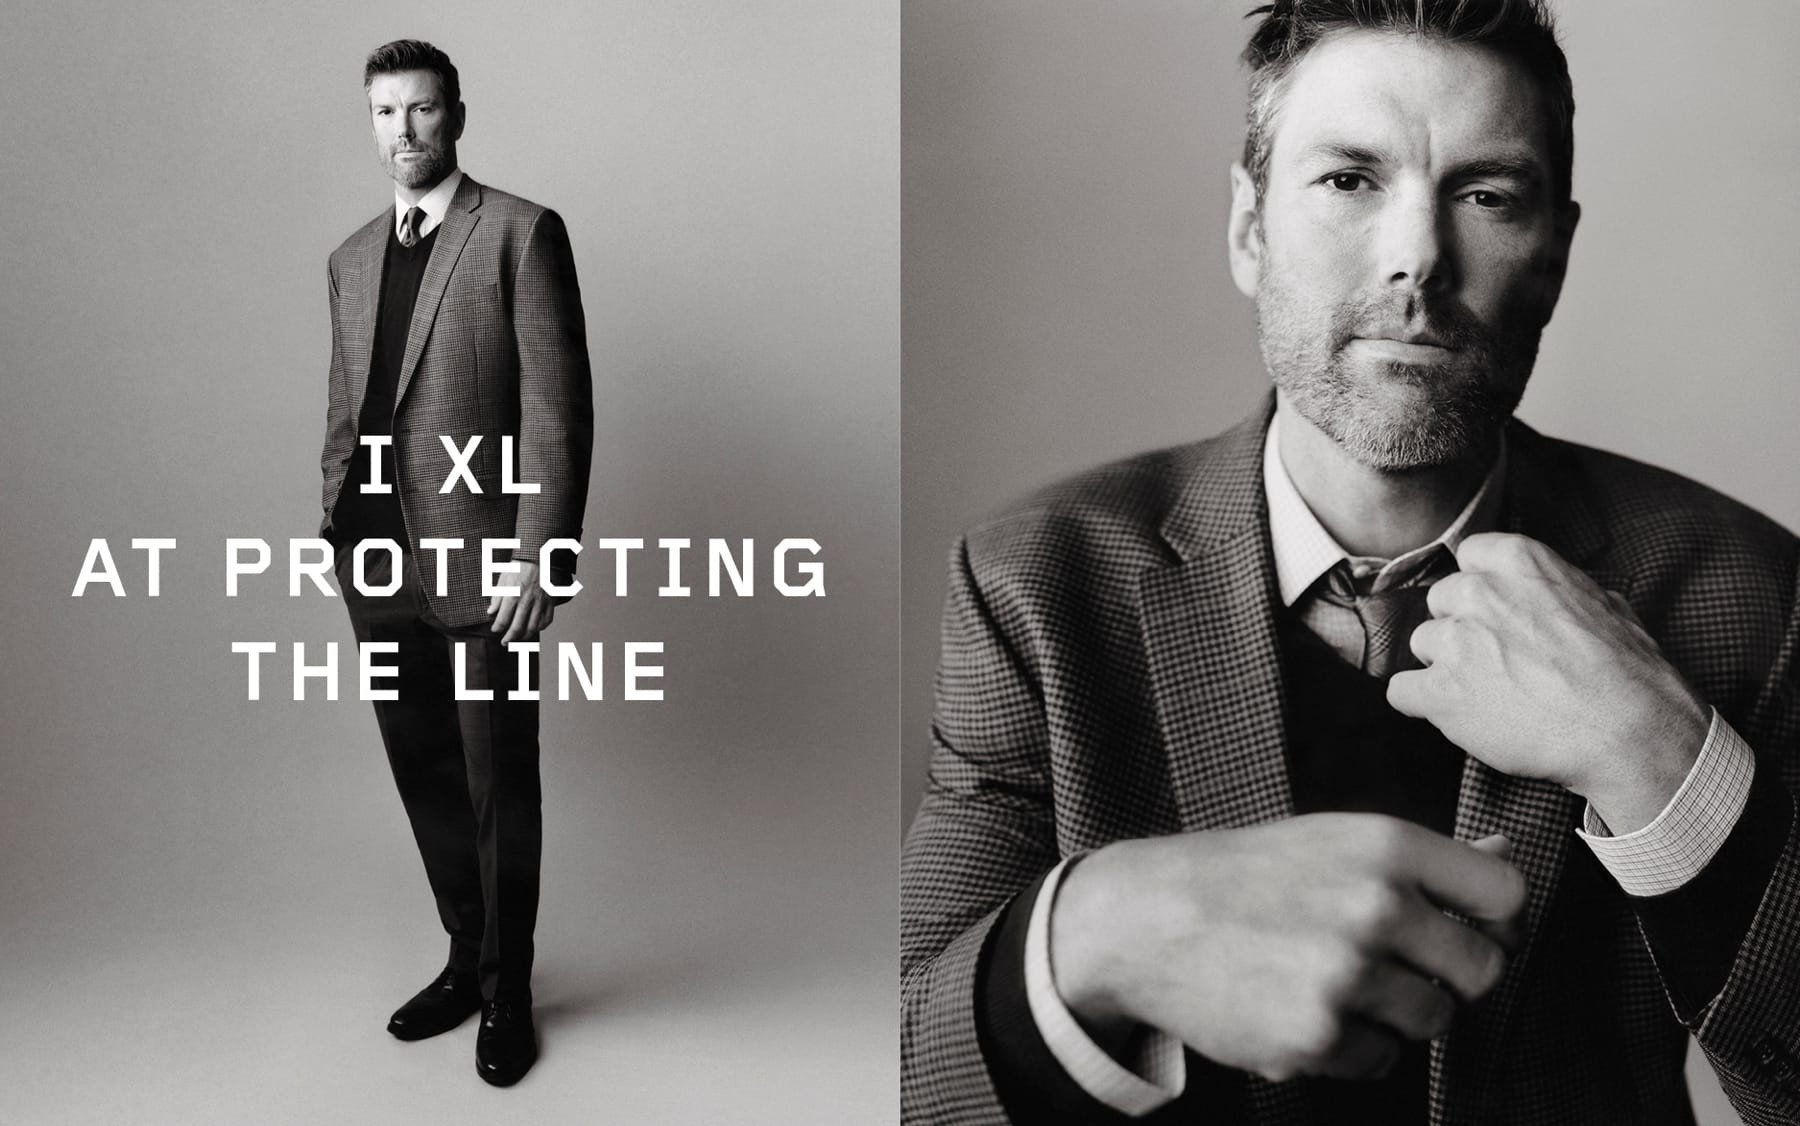 Hal Gill | I XL AT PROTECTING THE LINE